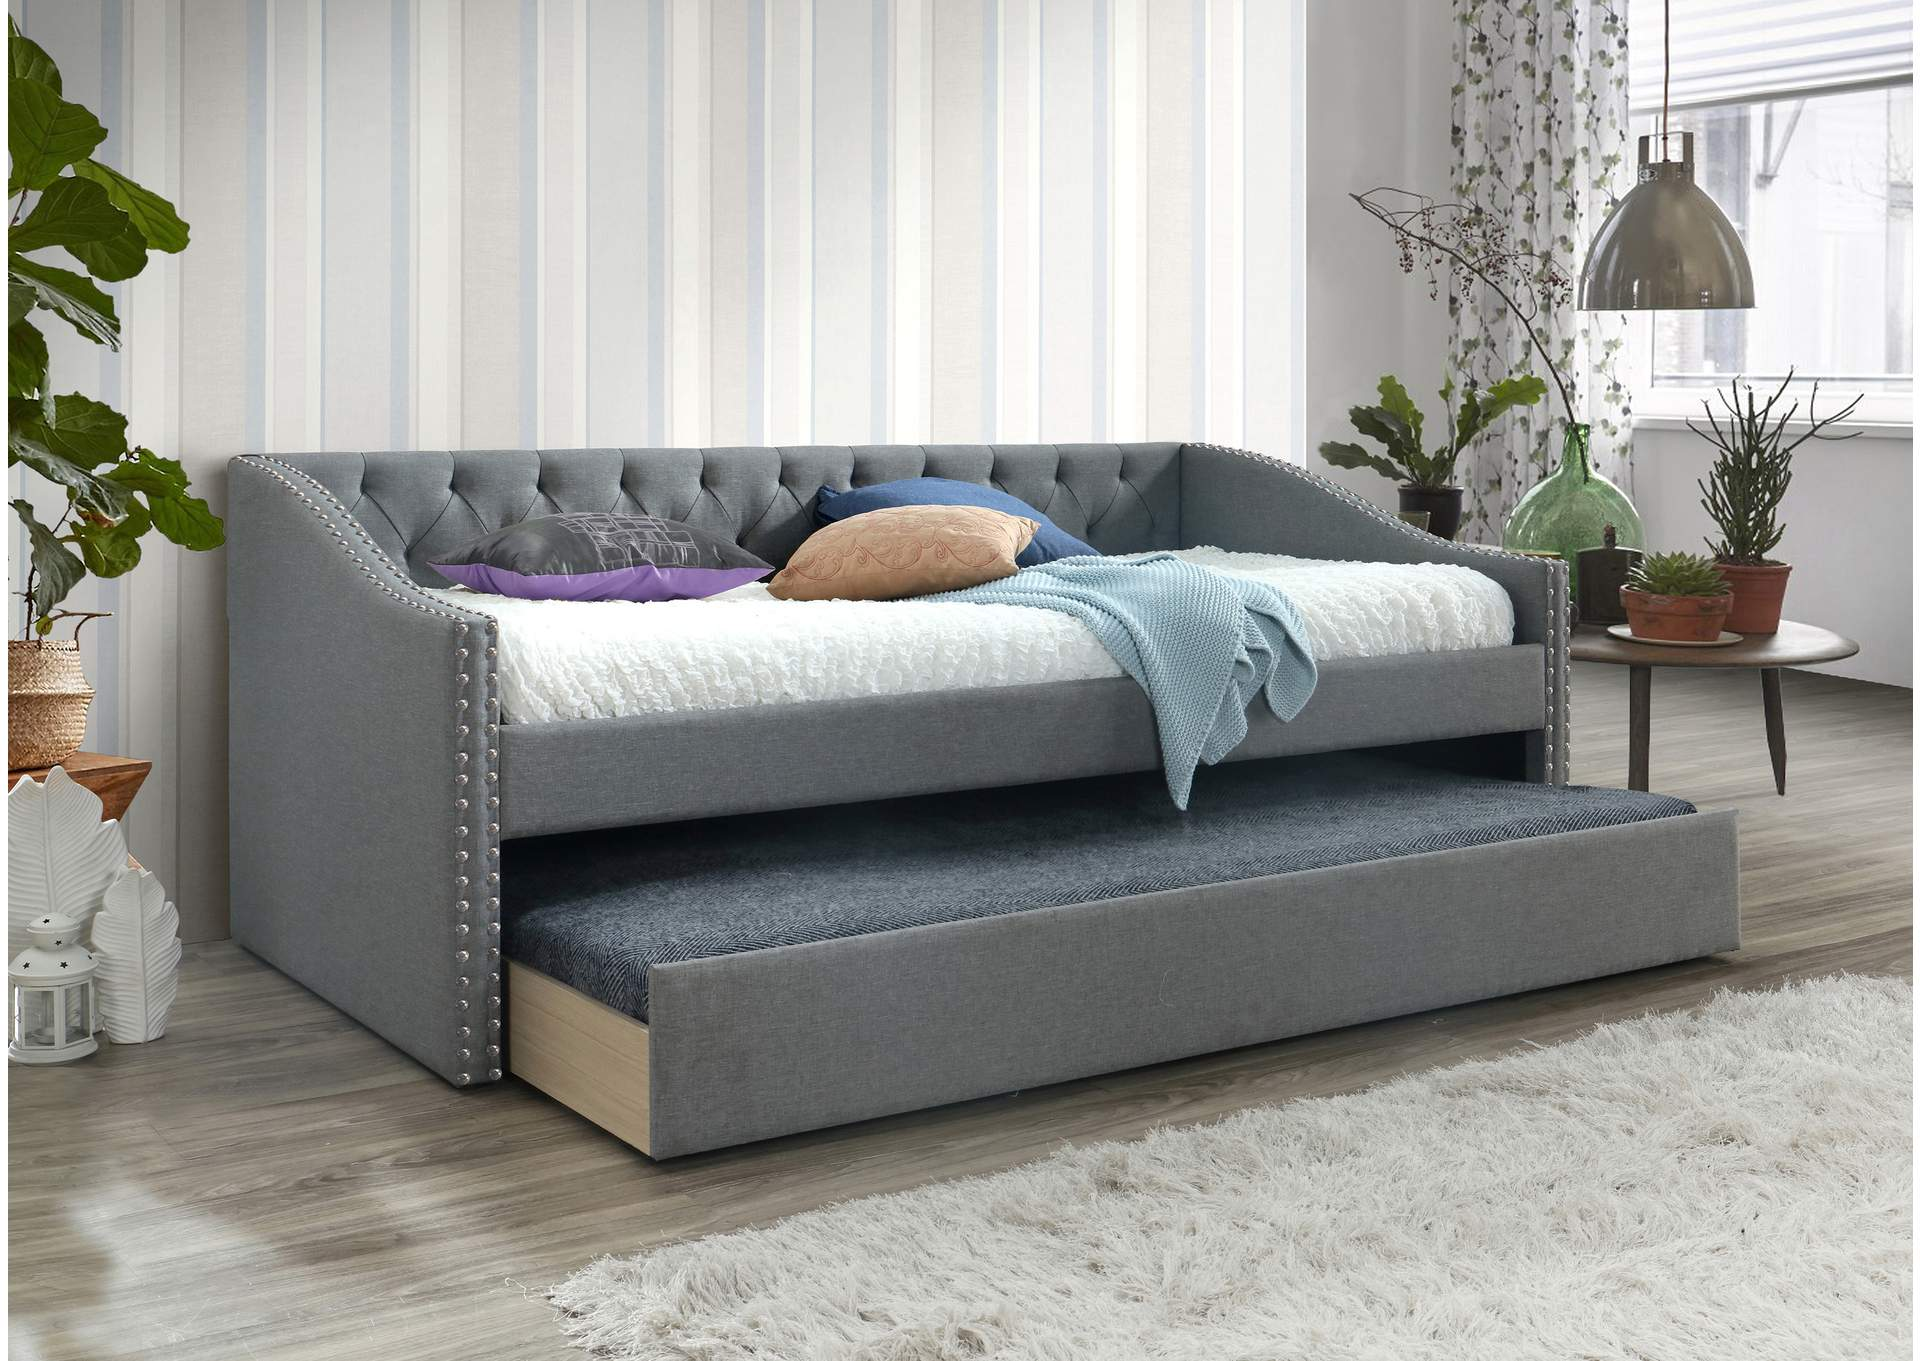 Loretta Gray Daybed,Crown Mark